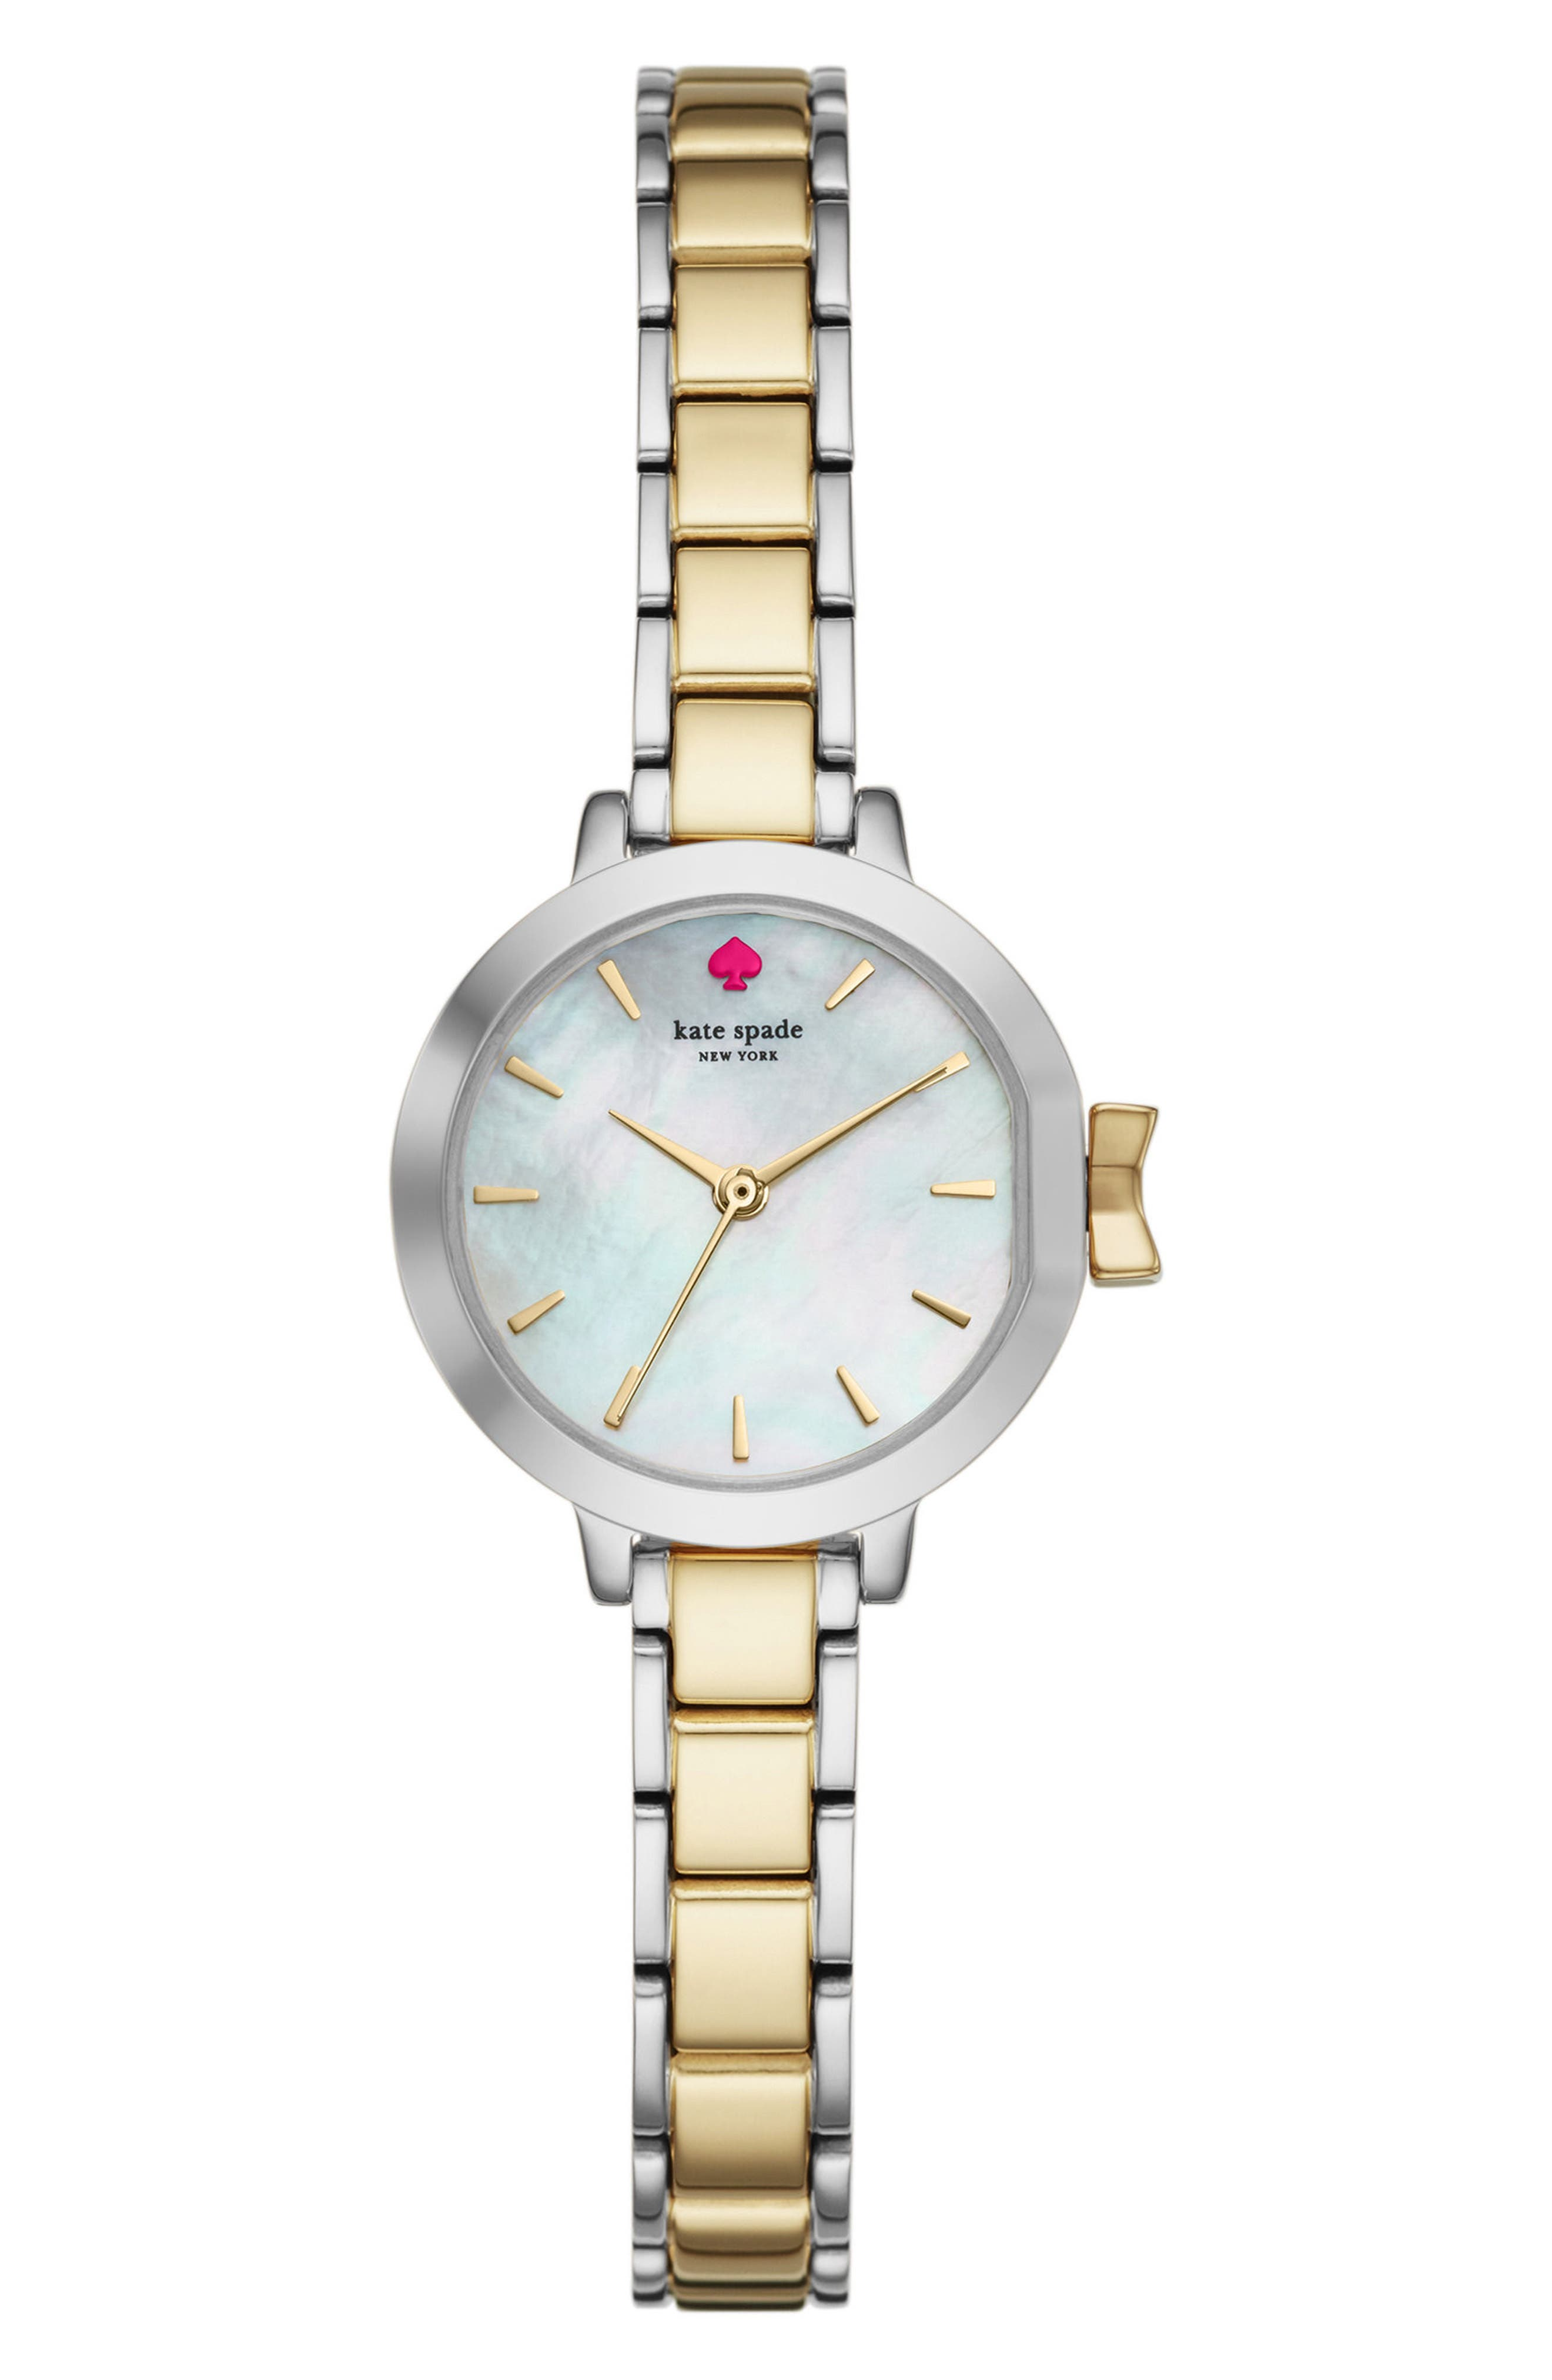 Main Image - kate spade new york park row bracelet watch, 24mm